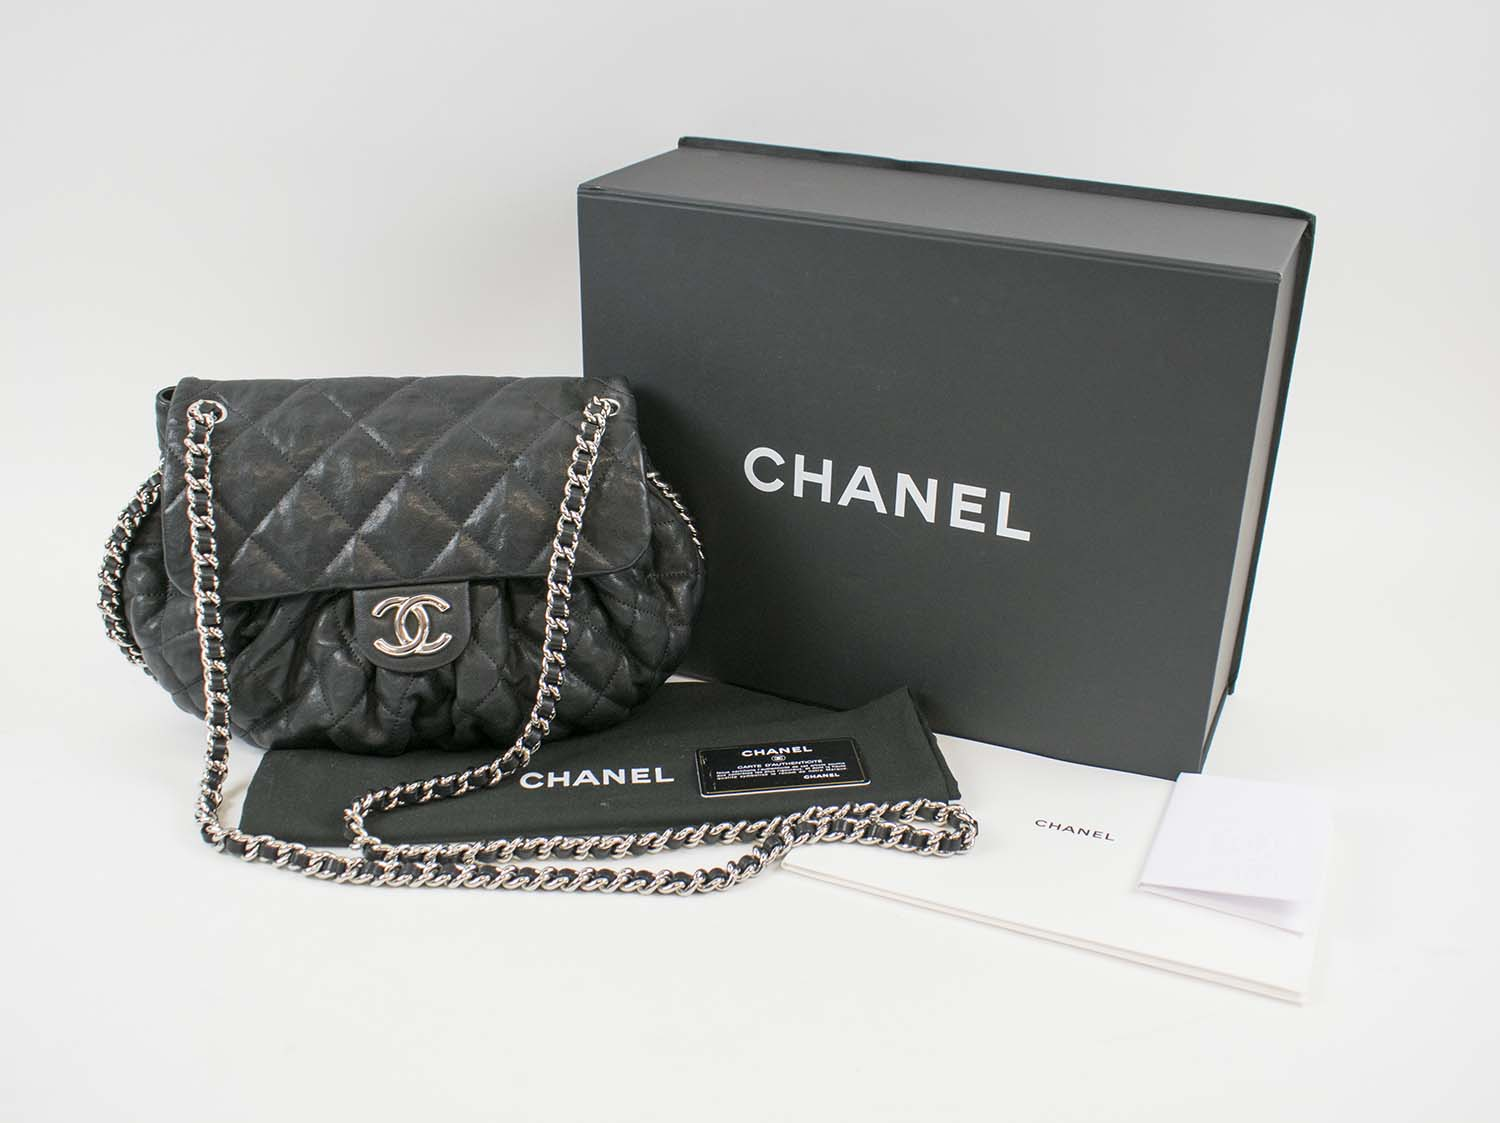 16a0749e5a9 Chanel Chain Around Messenger Bag Black Quilted Leather With Silver